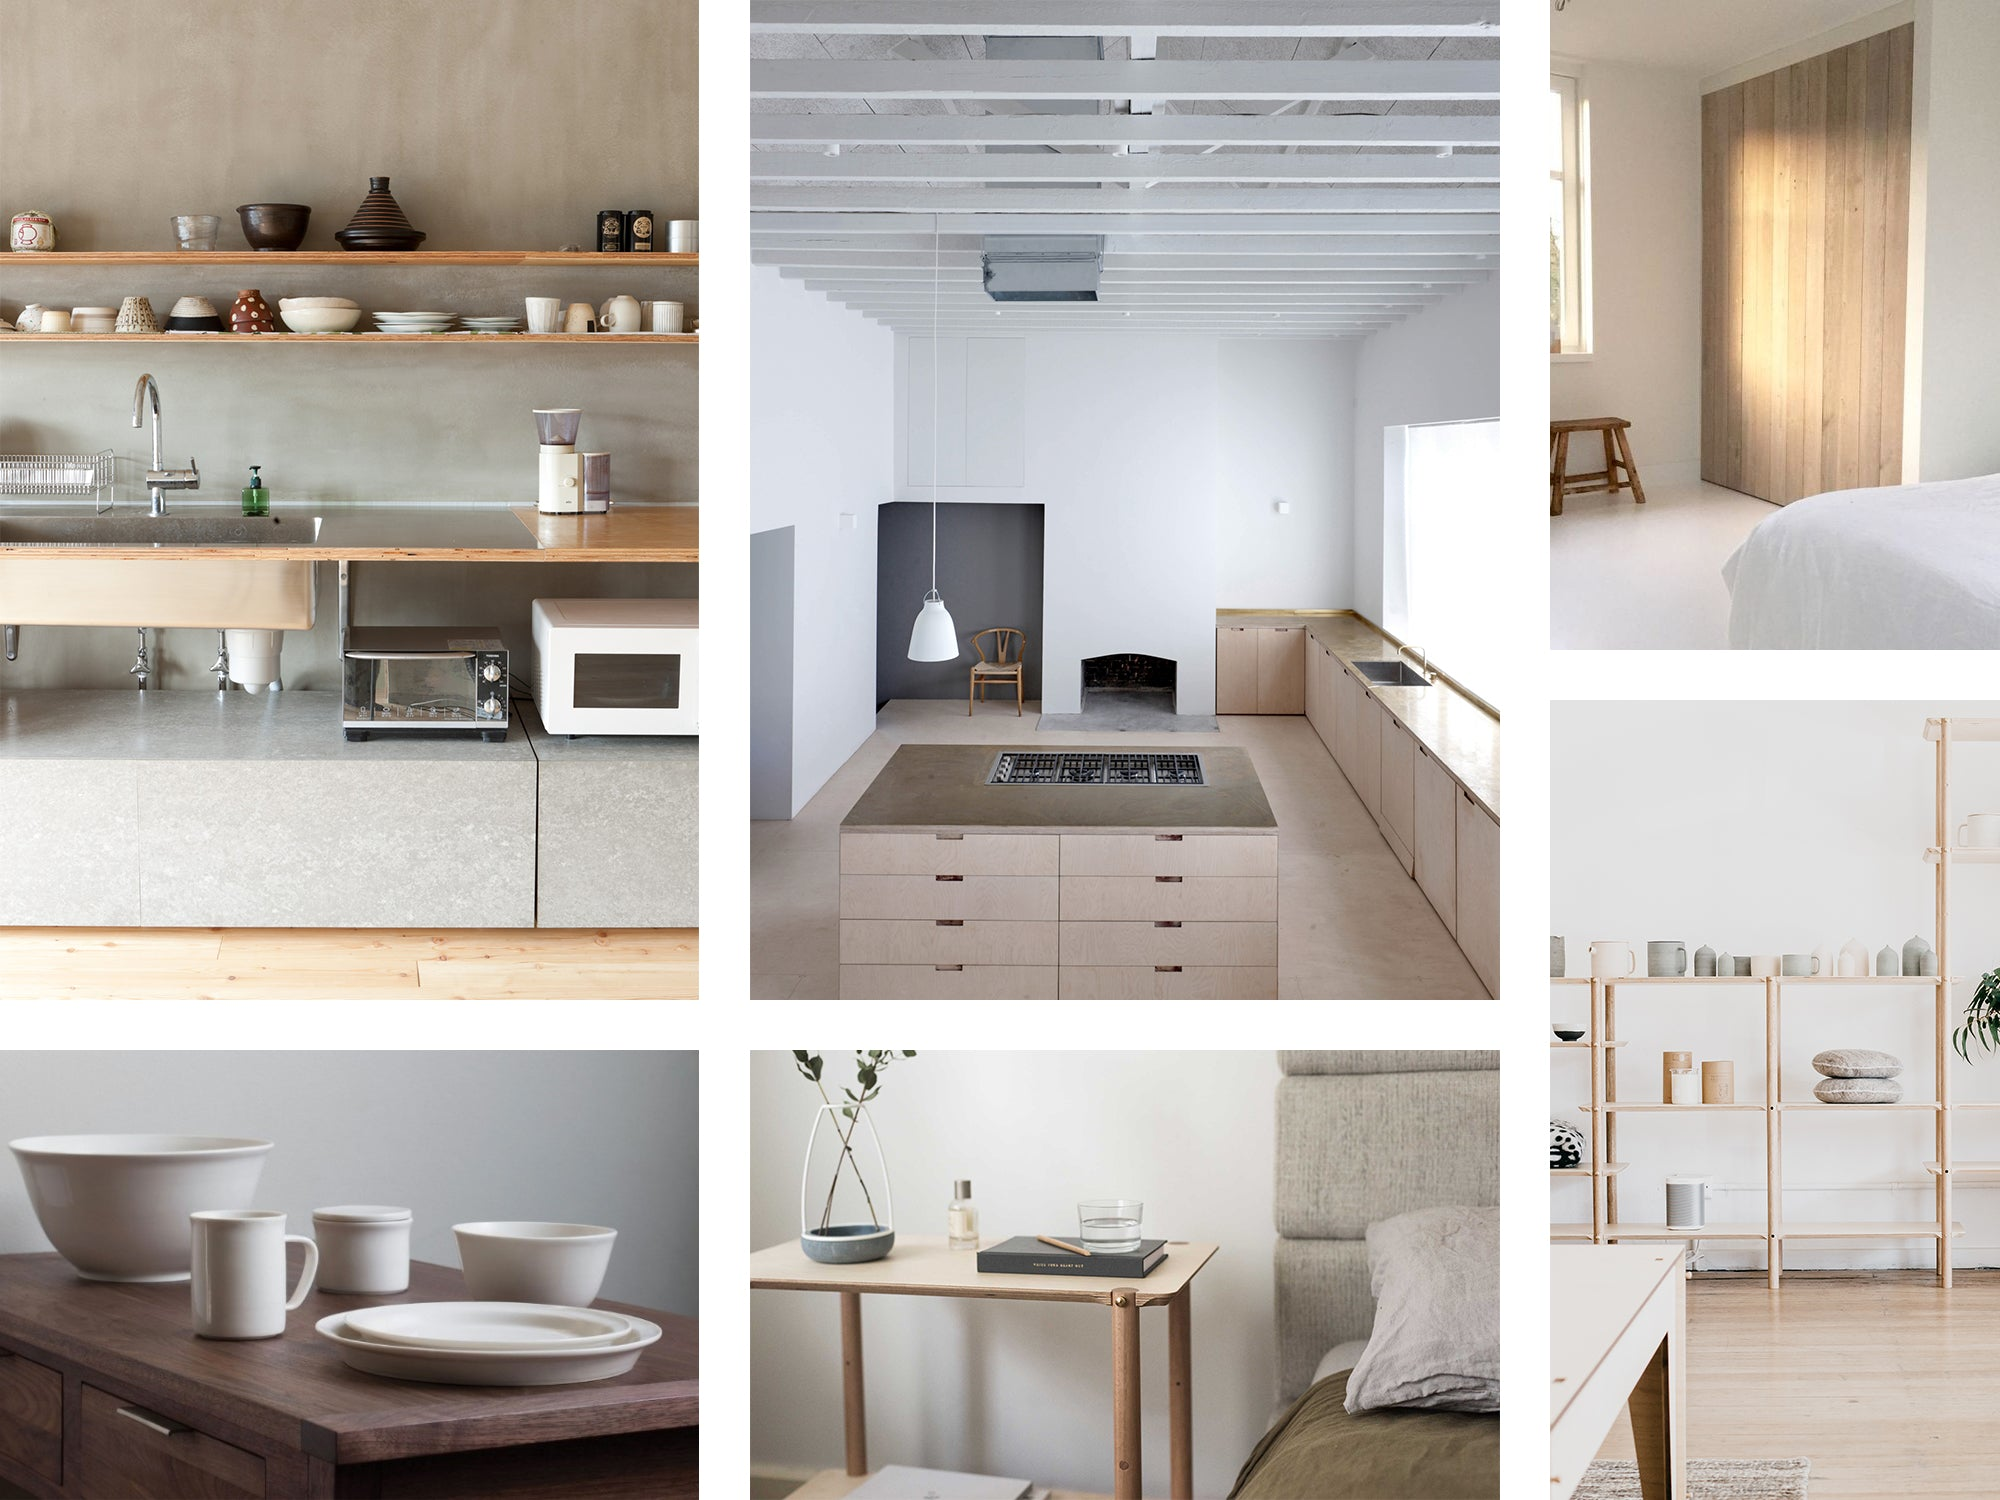 Minimalist interior design mood board featuring Plyroom and other simple interior design examples